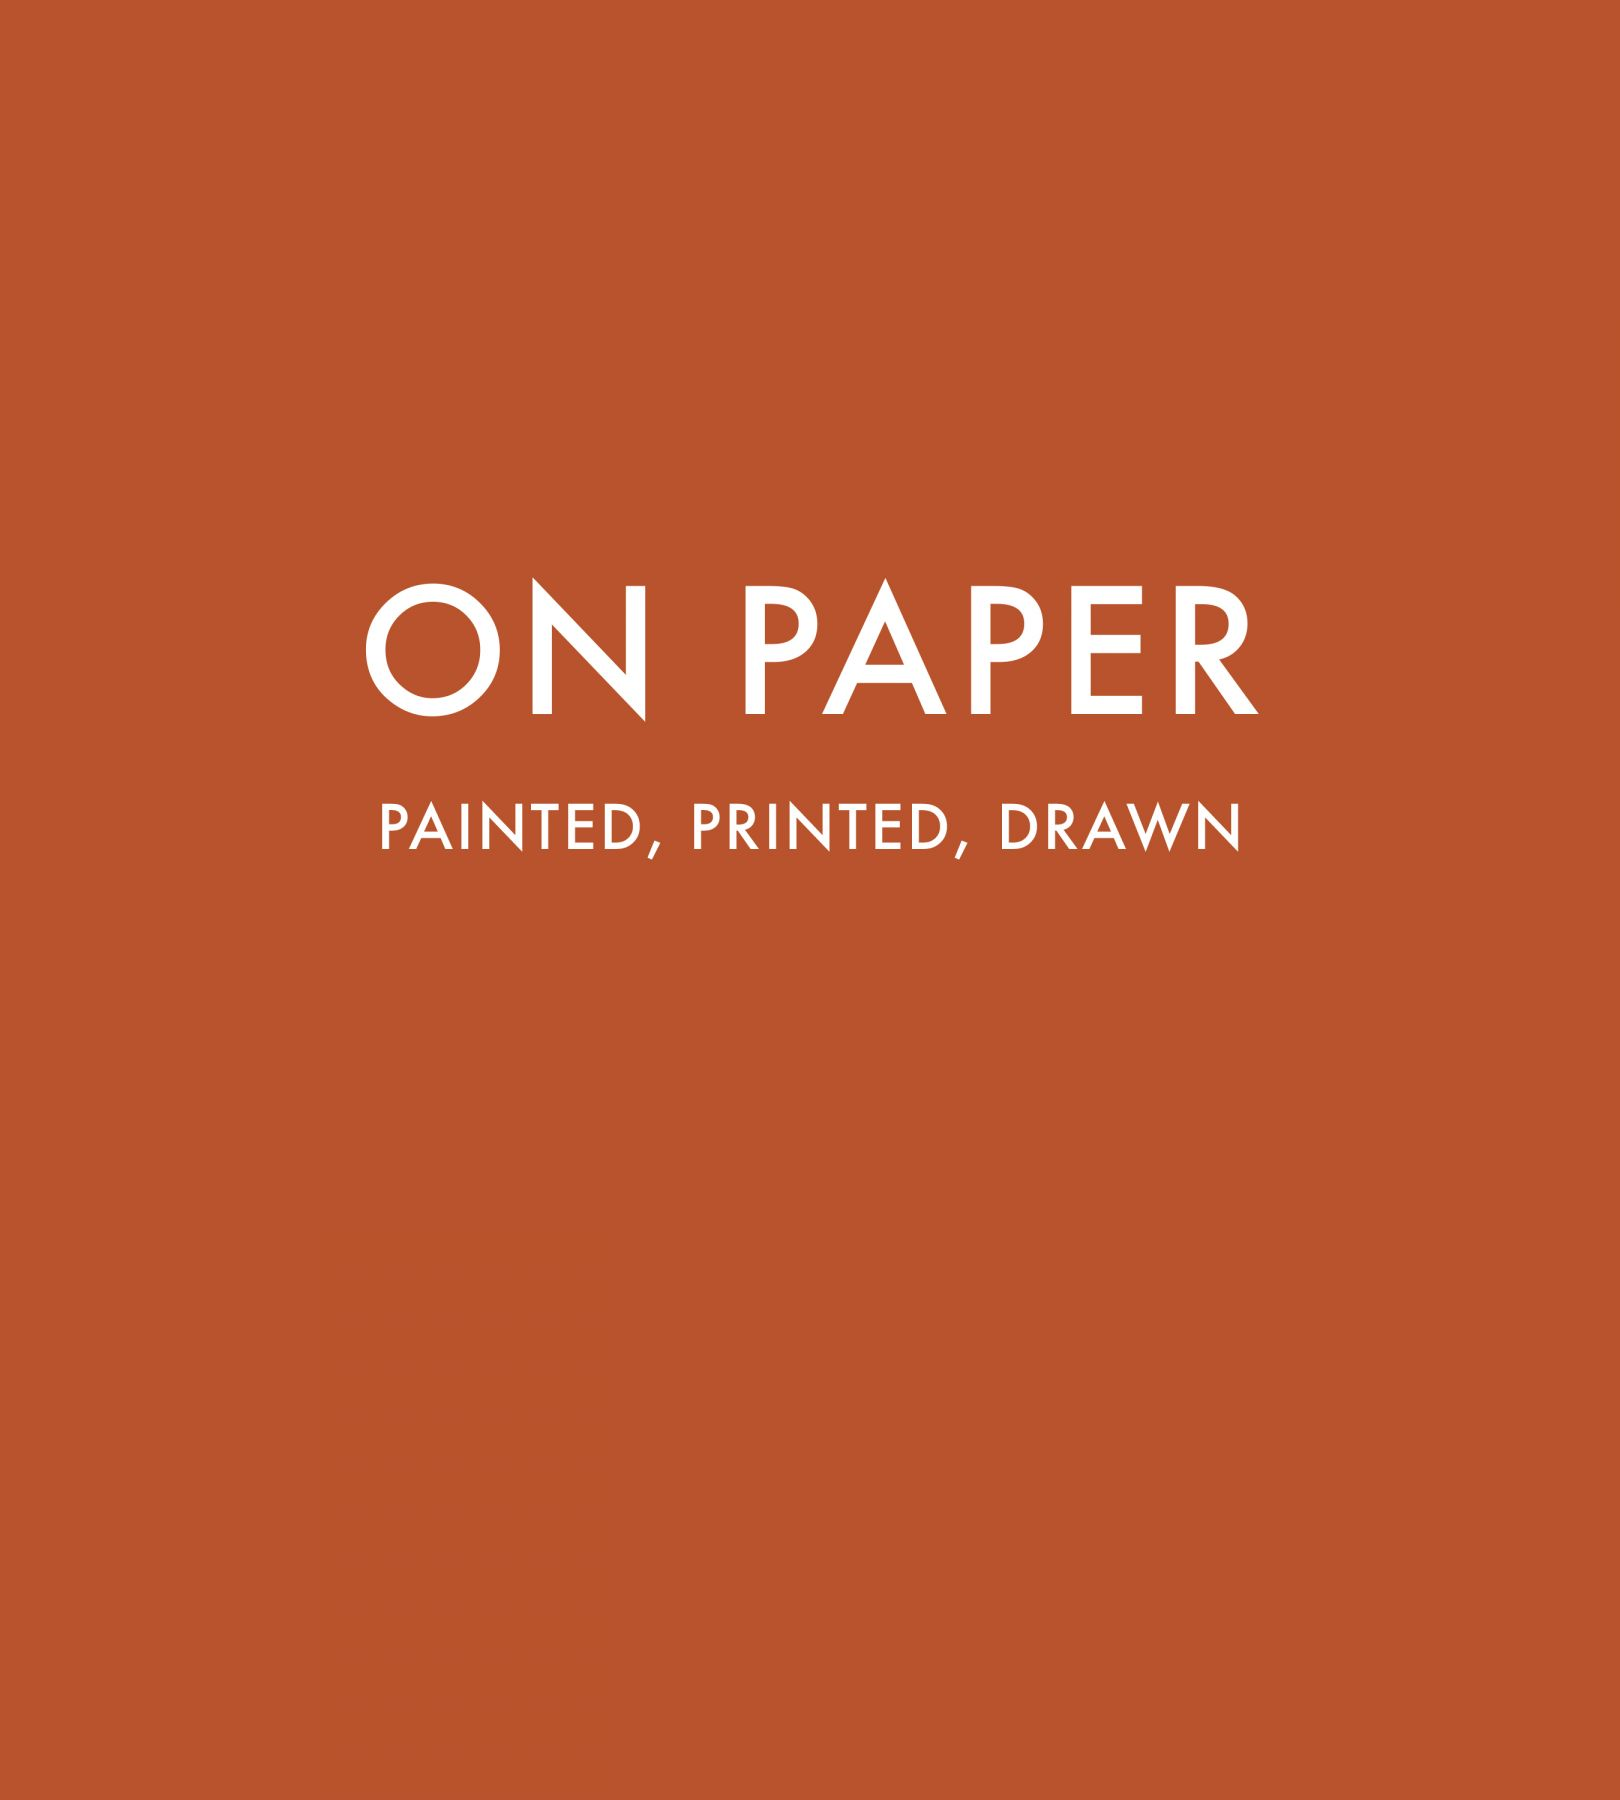 On Paper: Painted, Printed, Drawn